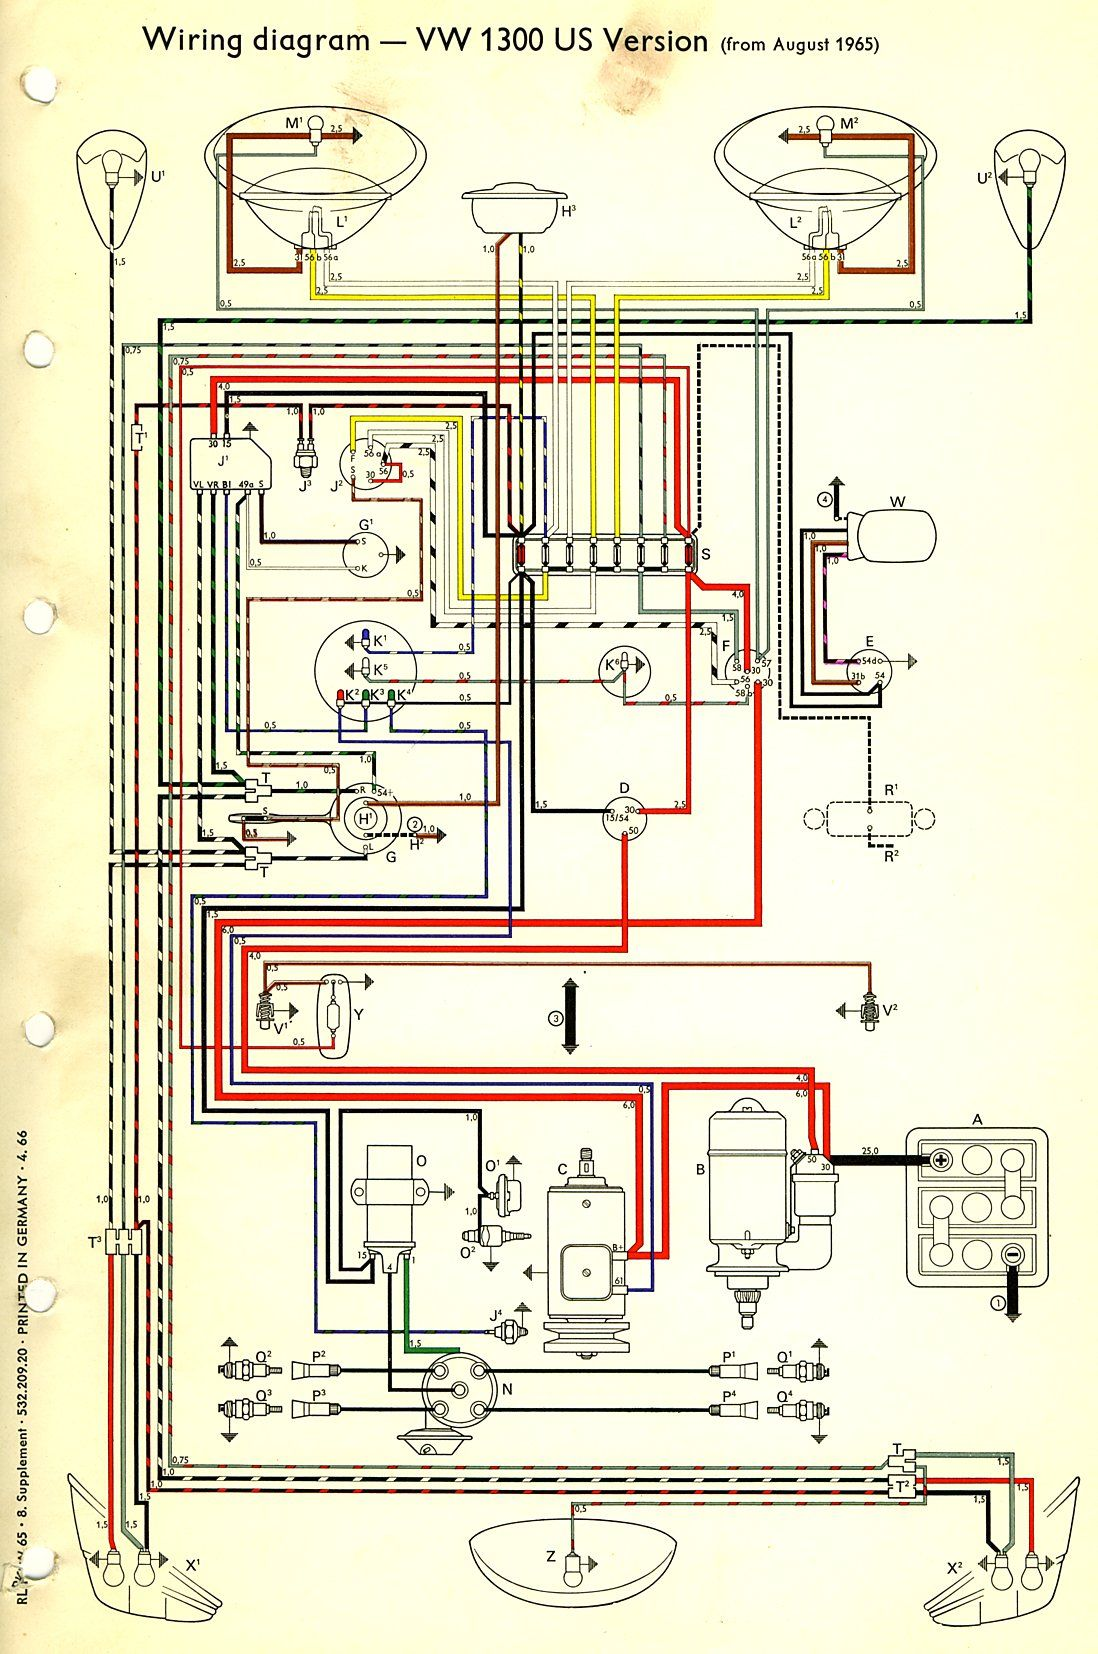 volkswagen dune buggy wiring diagram dune buggy wiring schematic - google search | 69 bug or 69 ... simple dune buggy wiring diagram